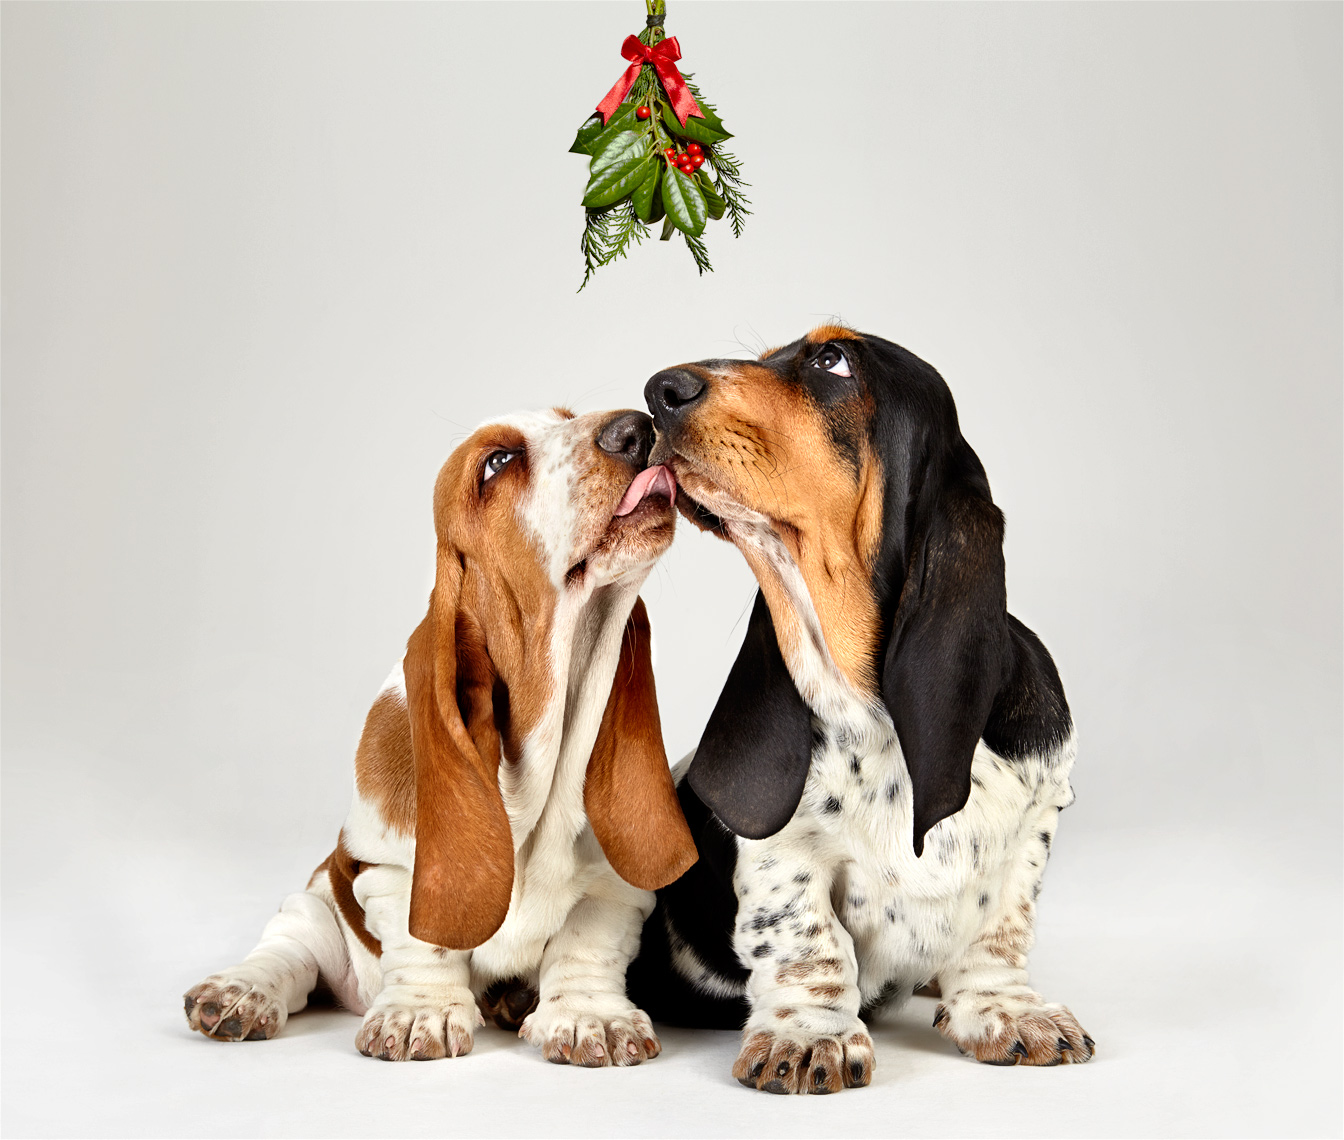 141011-BassetHound-0505-MistleToe